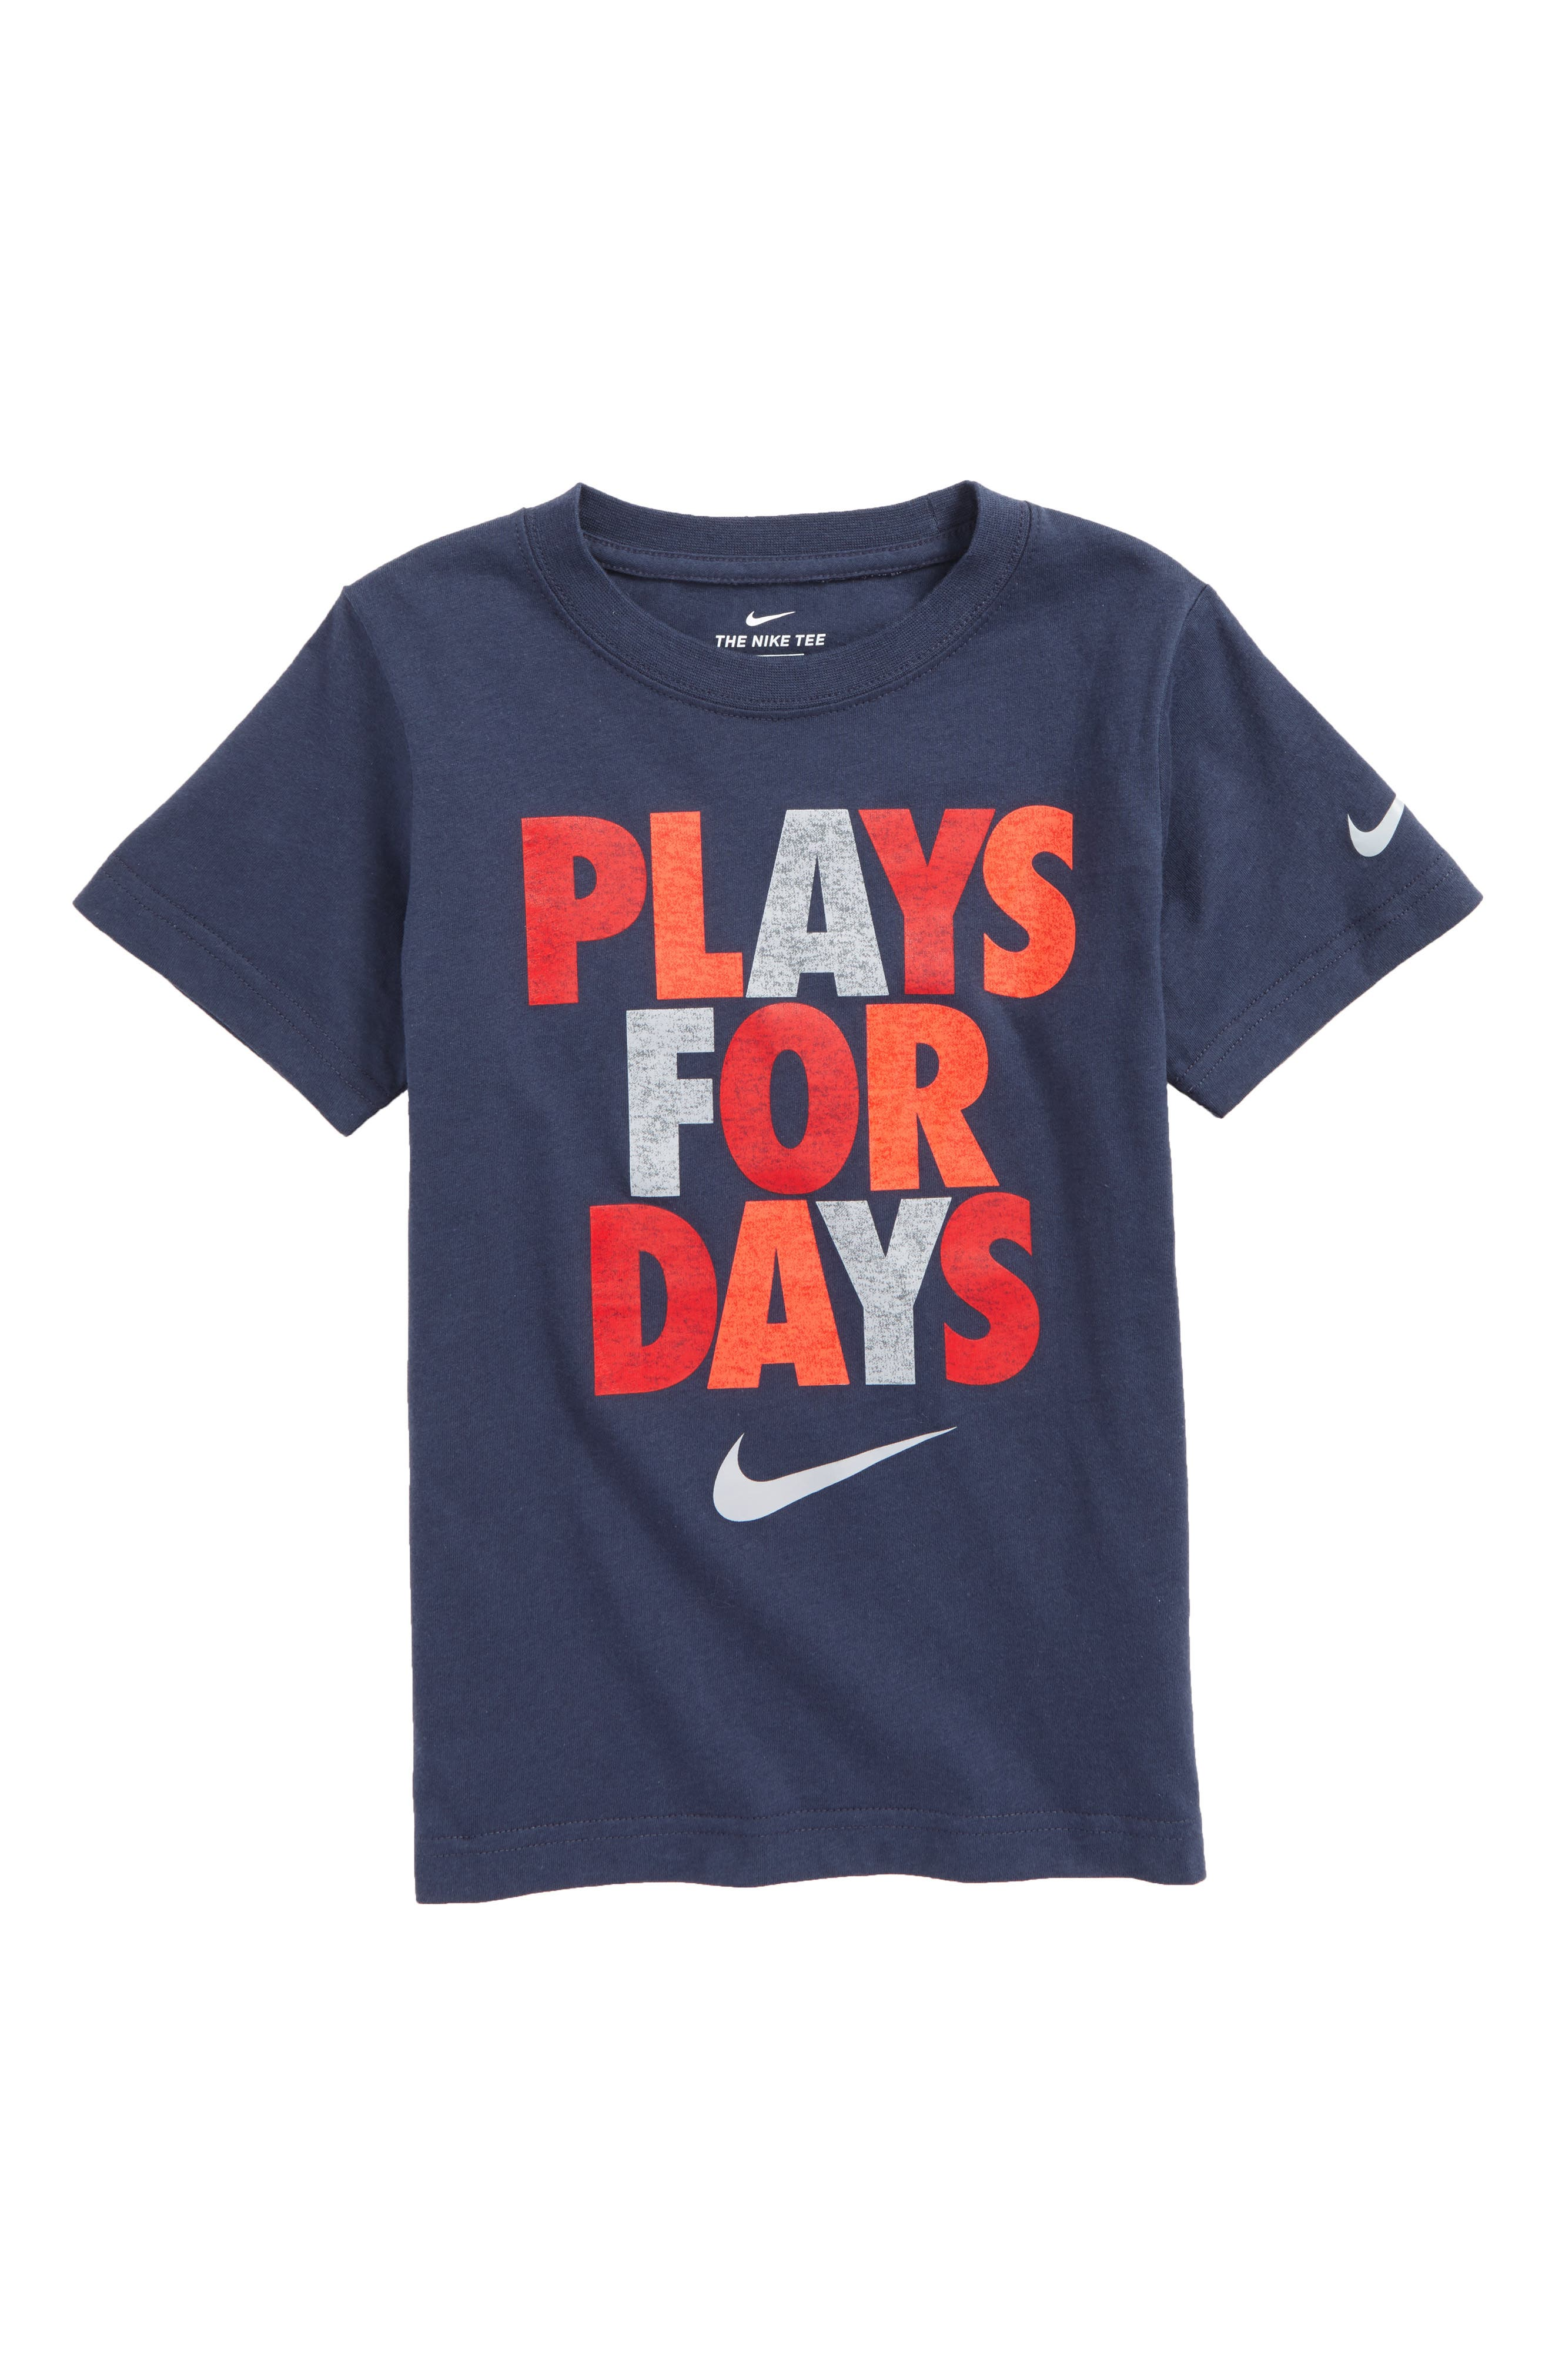 Plays for Days Graphic T-Shirt,                             Main thumbnail 1, color,                             Thunder Blue